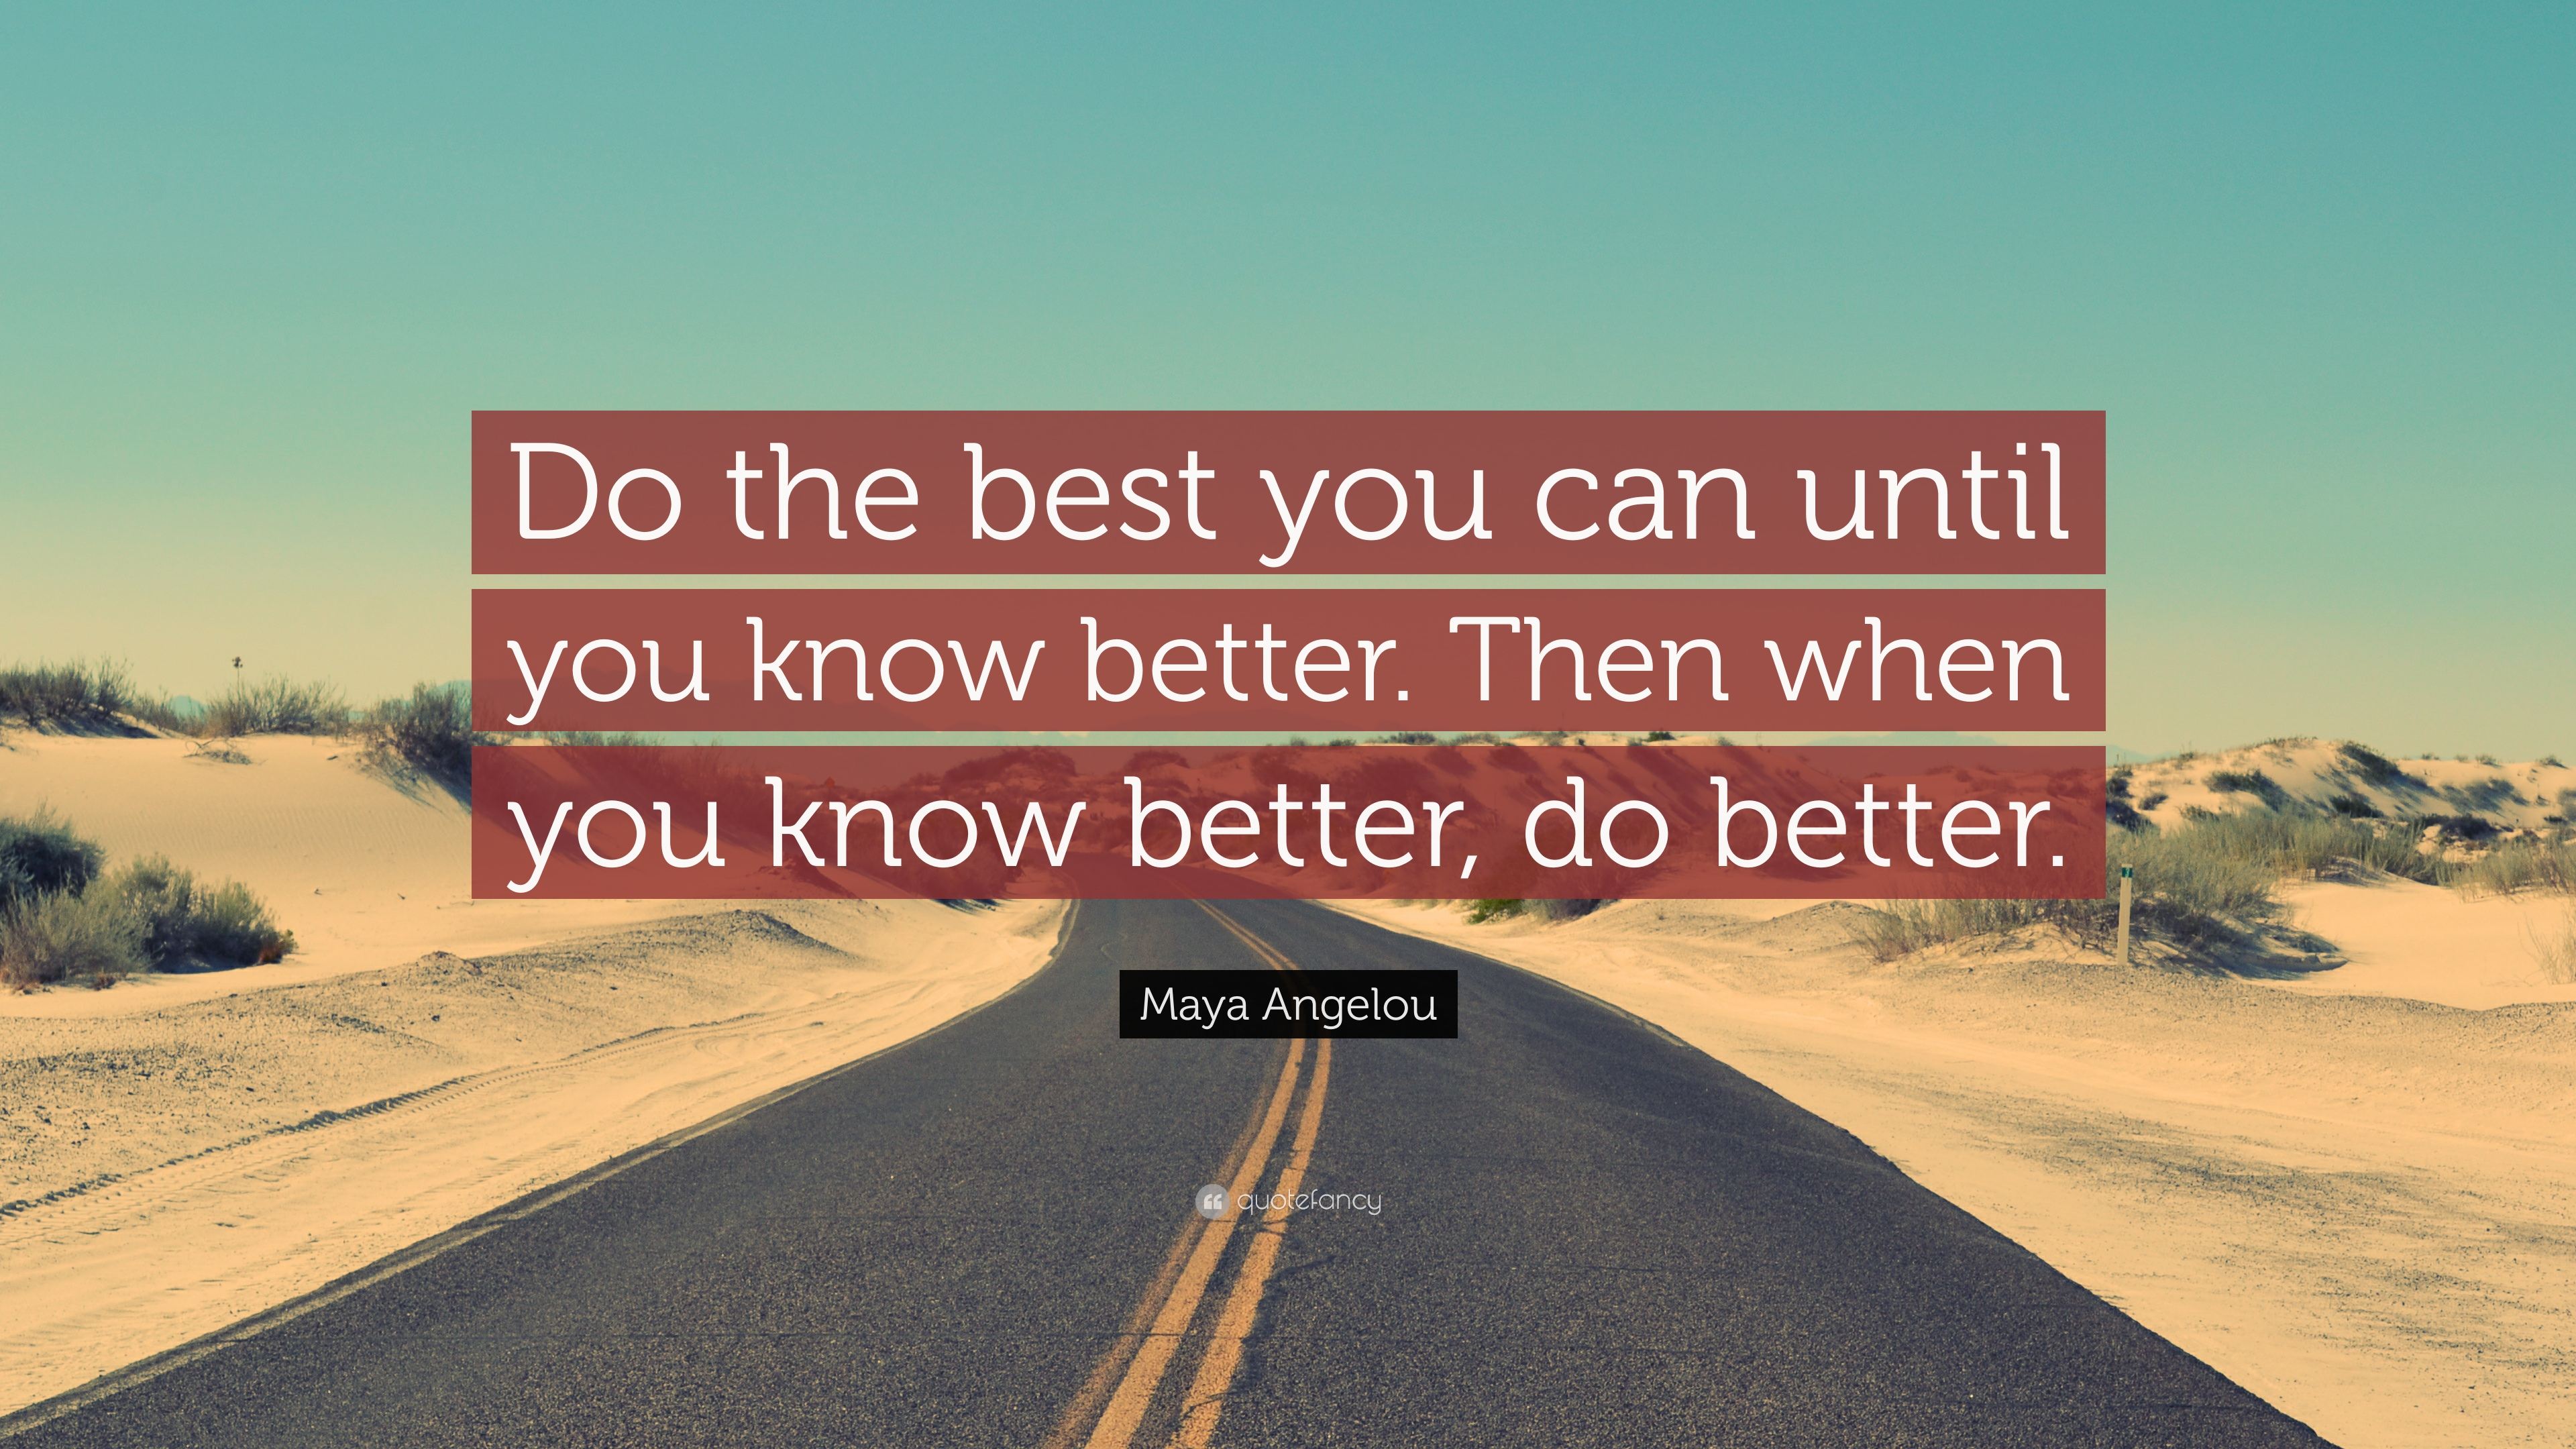 58804-Maya-Angelou-Quote-Do-the-best-you-can-until-you-know-better-Then.jpg